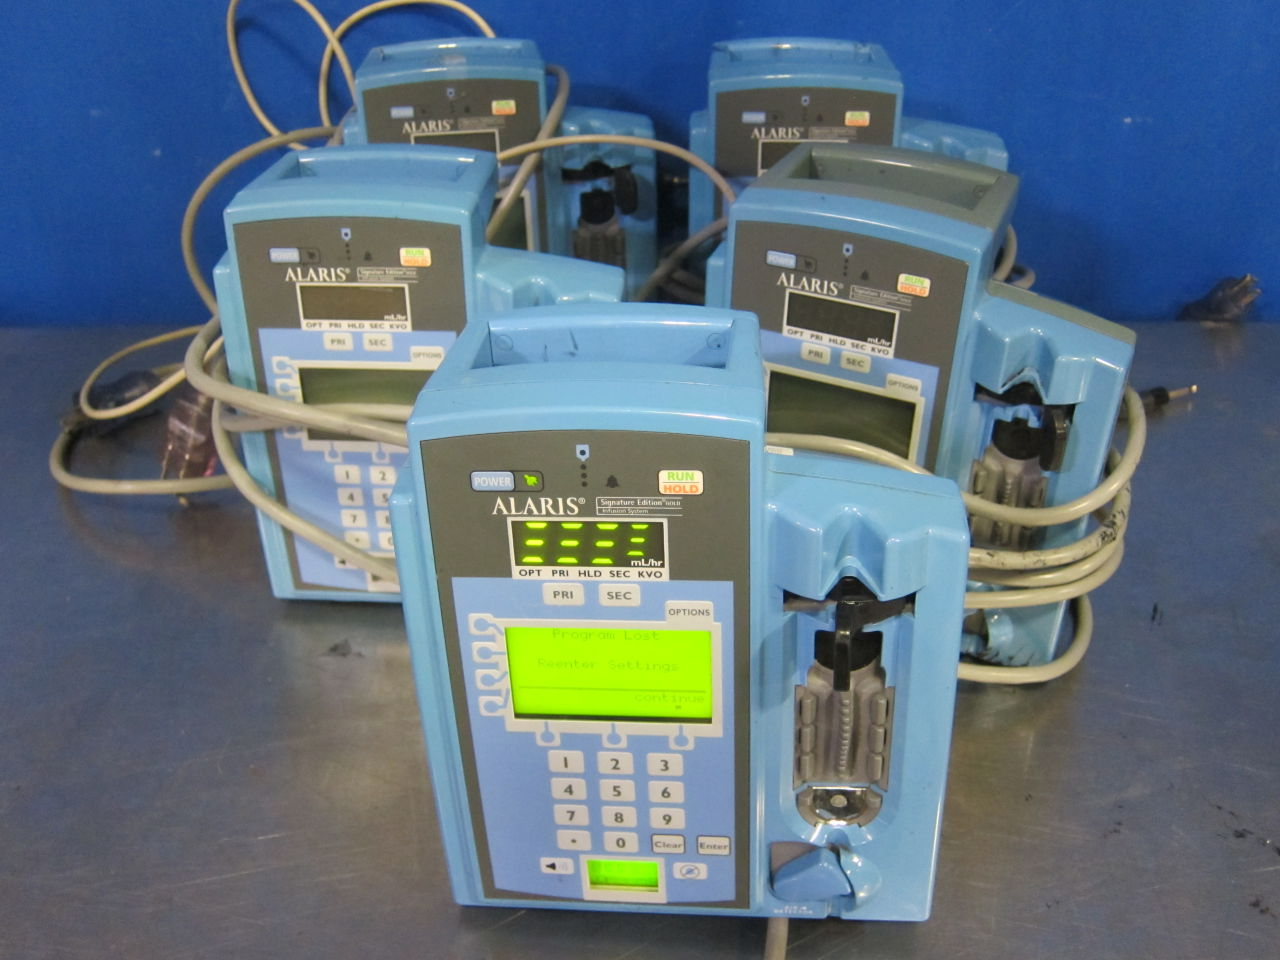 ALARIS 7130  - Lot of 5 Pump IV Infusion